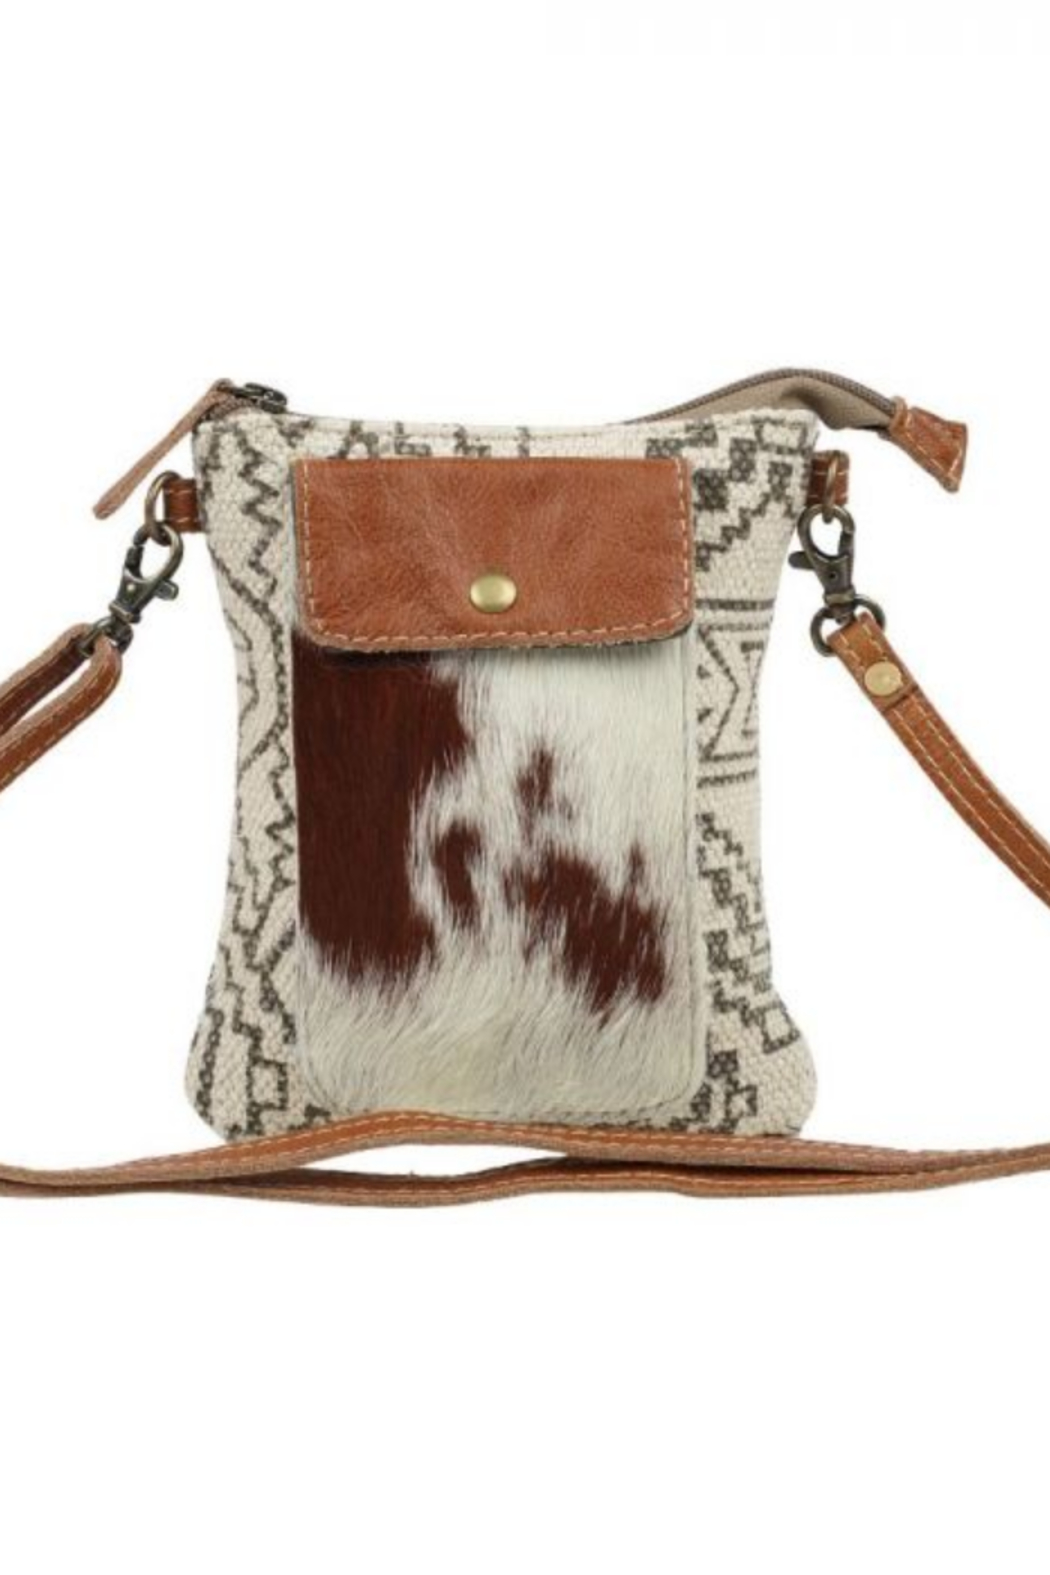 Myra Bag Myra Vuierra Rivet Small Crossbody Bag 1563 - Front Cropped Image